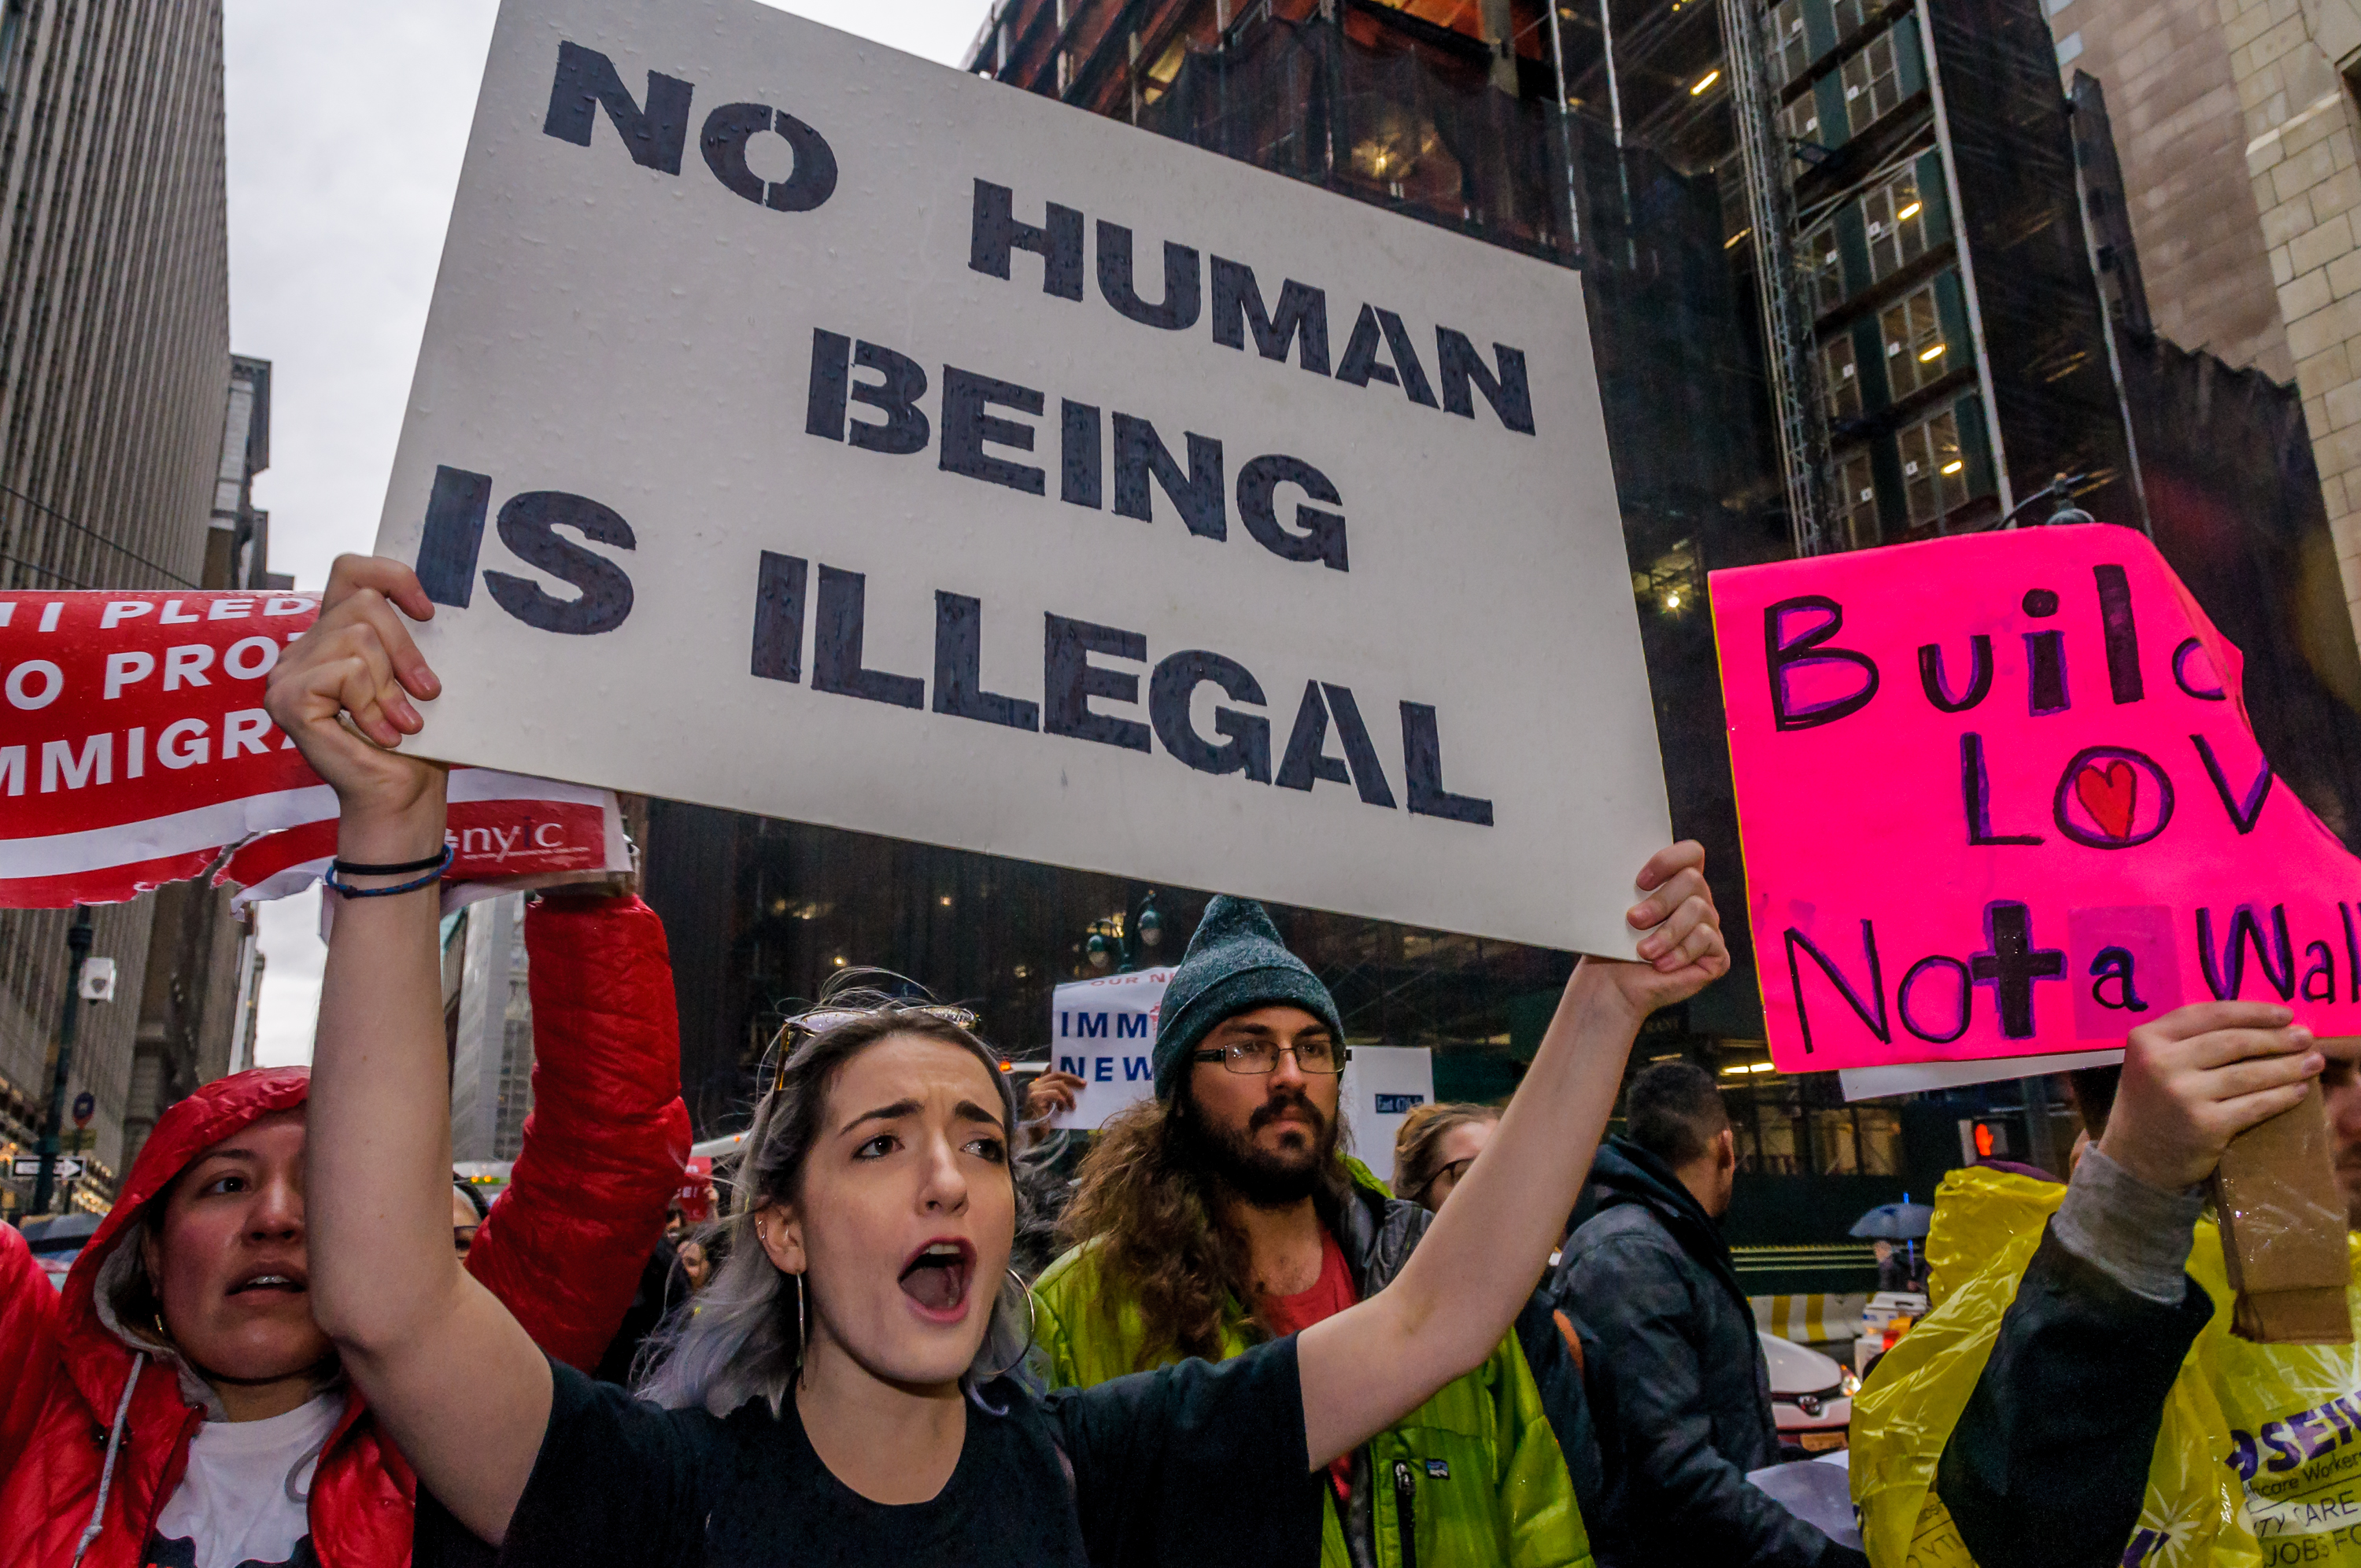 """A protester in a crowd on a city street holds up a sign that reads, """"No human being is illegal."""""""